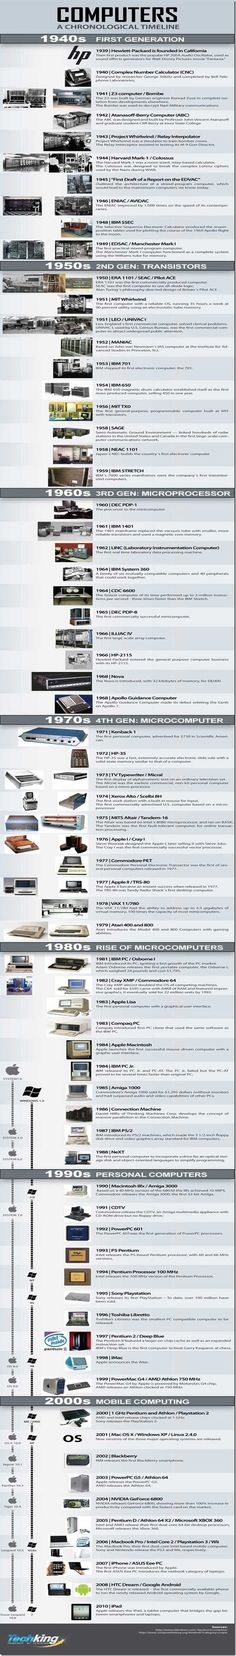 The History of Computers | #infographic